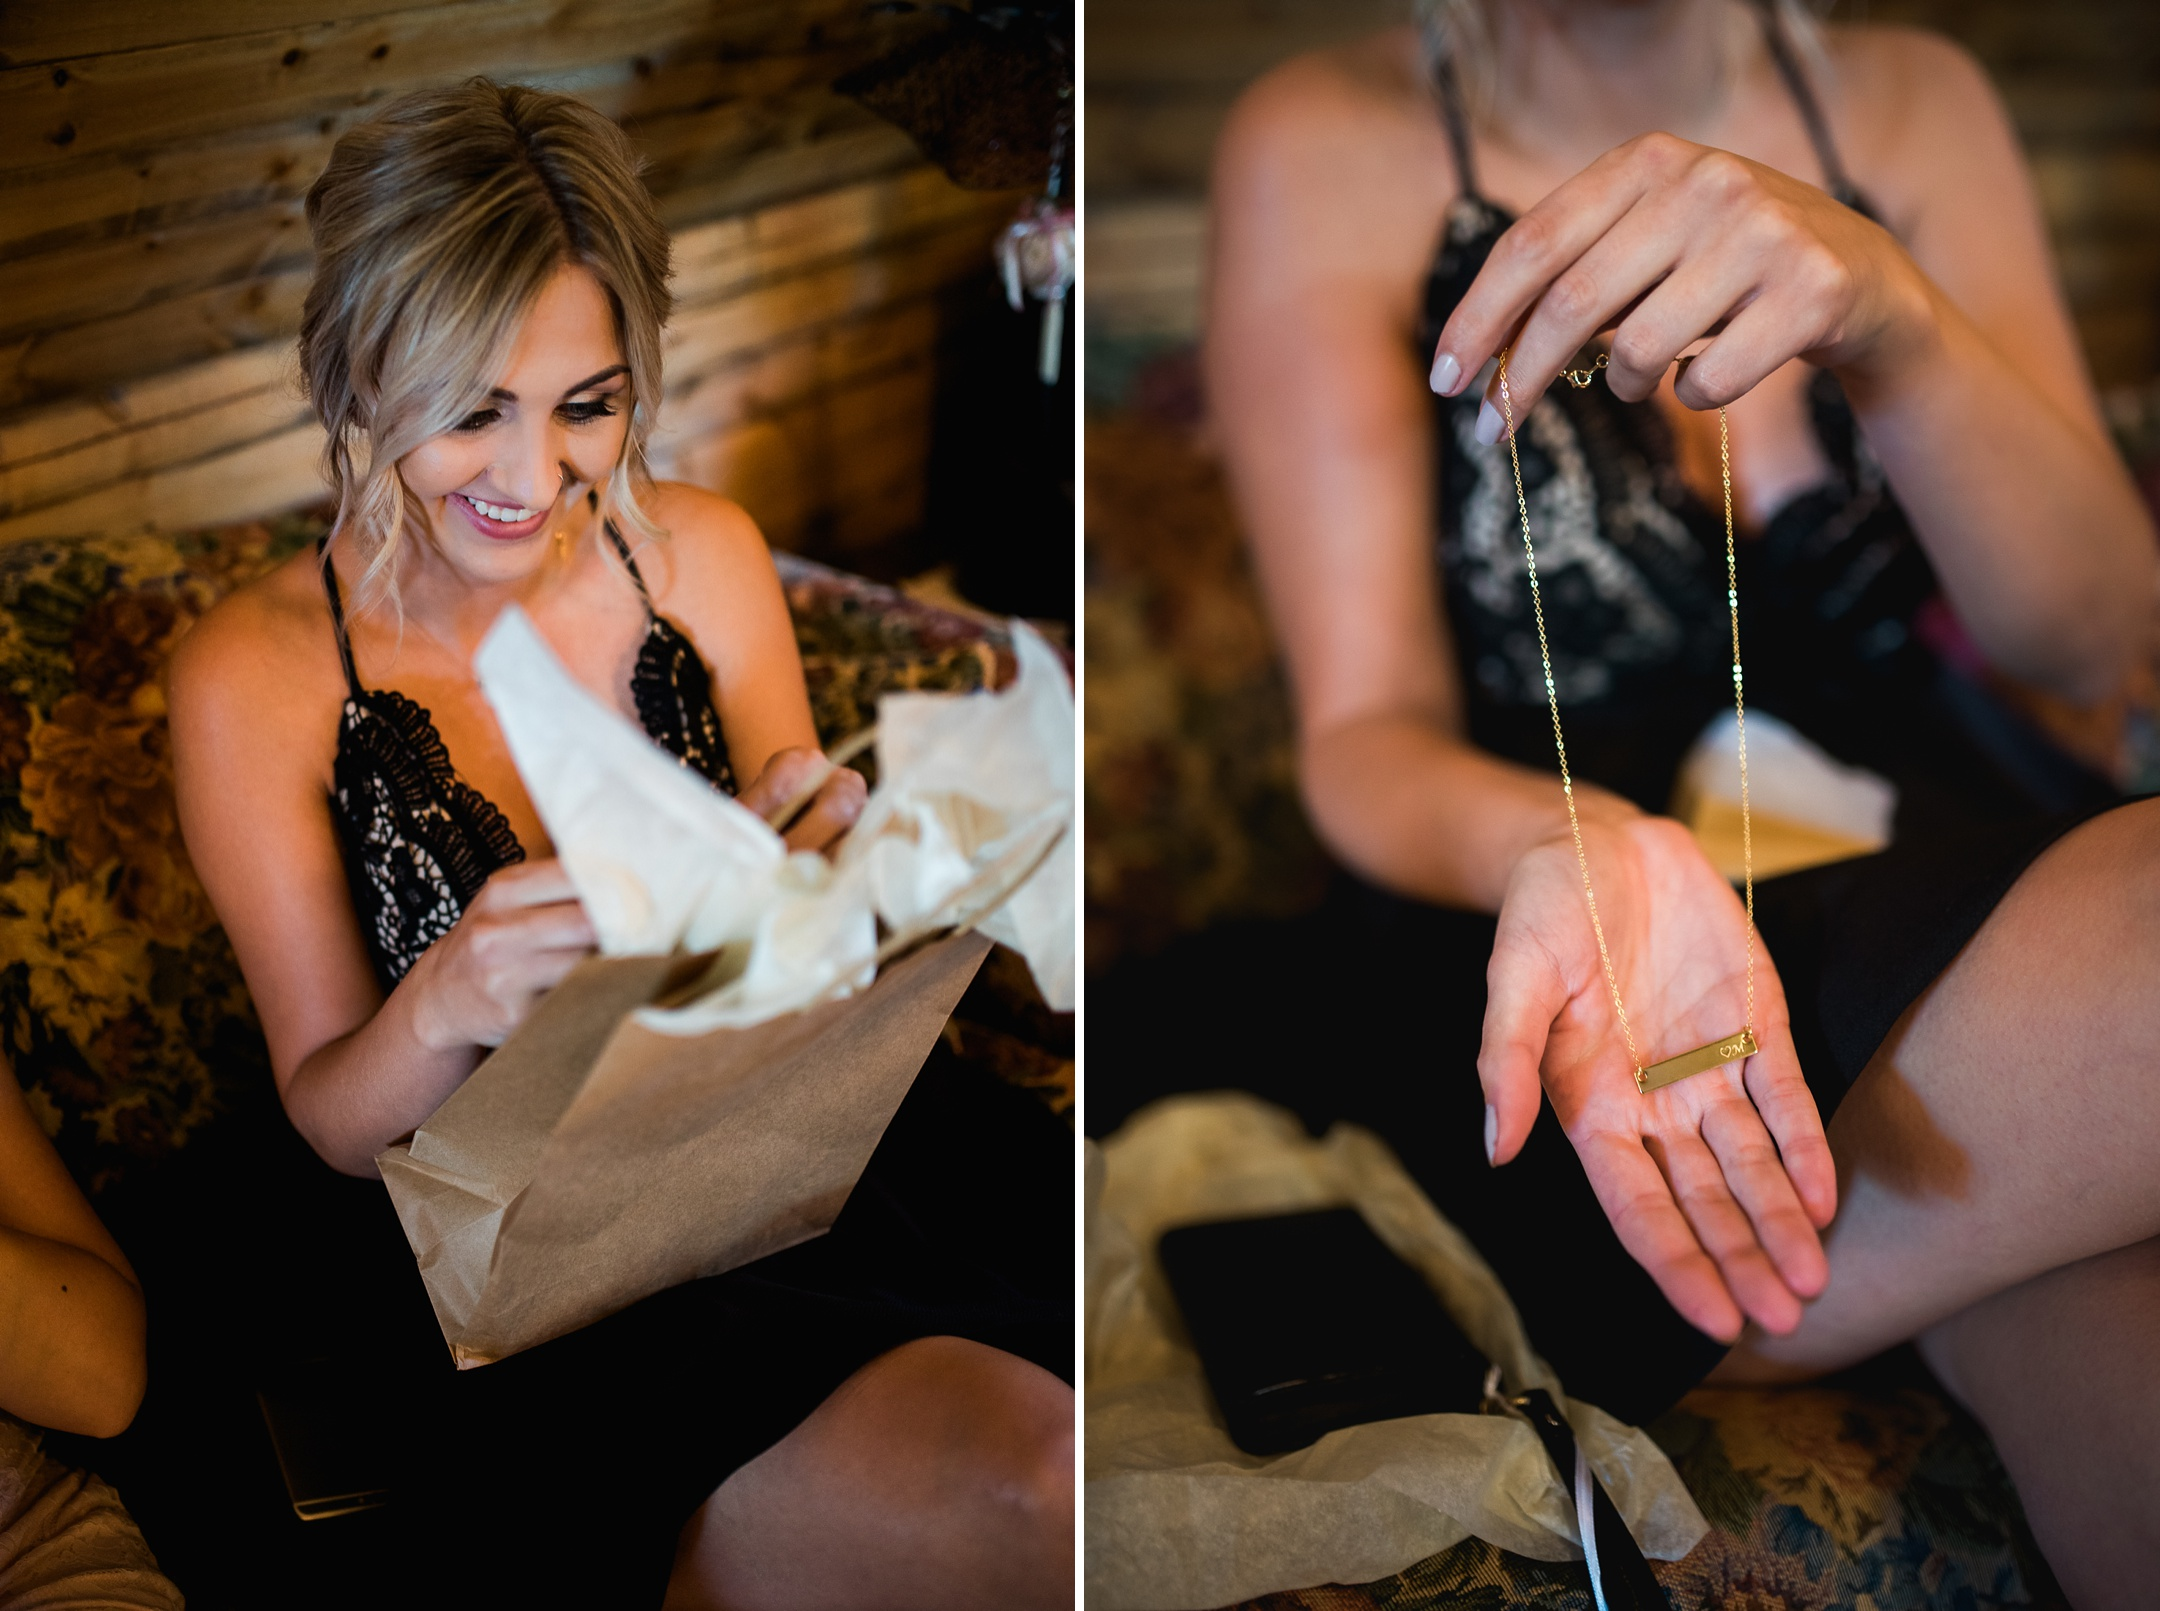 whitby wedding getting ready details